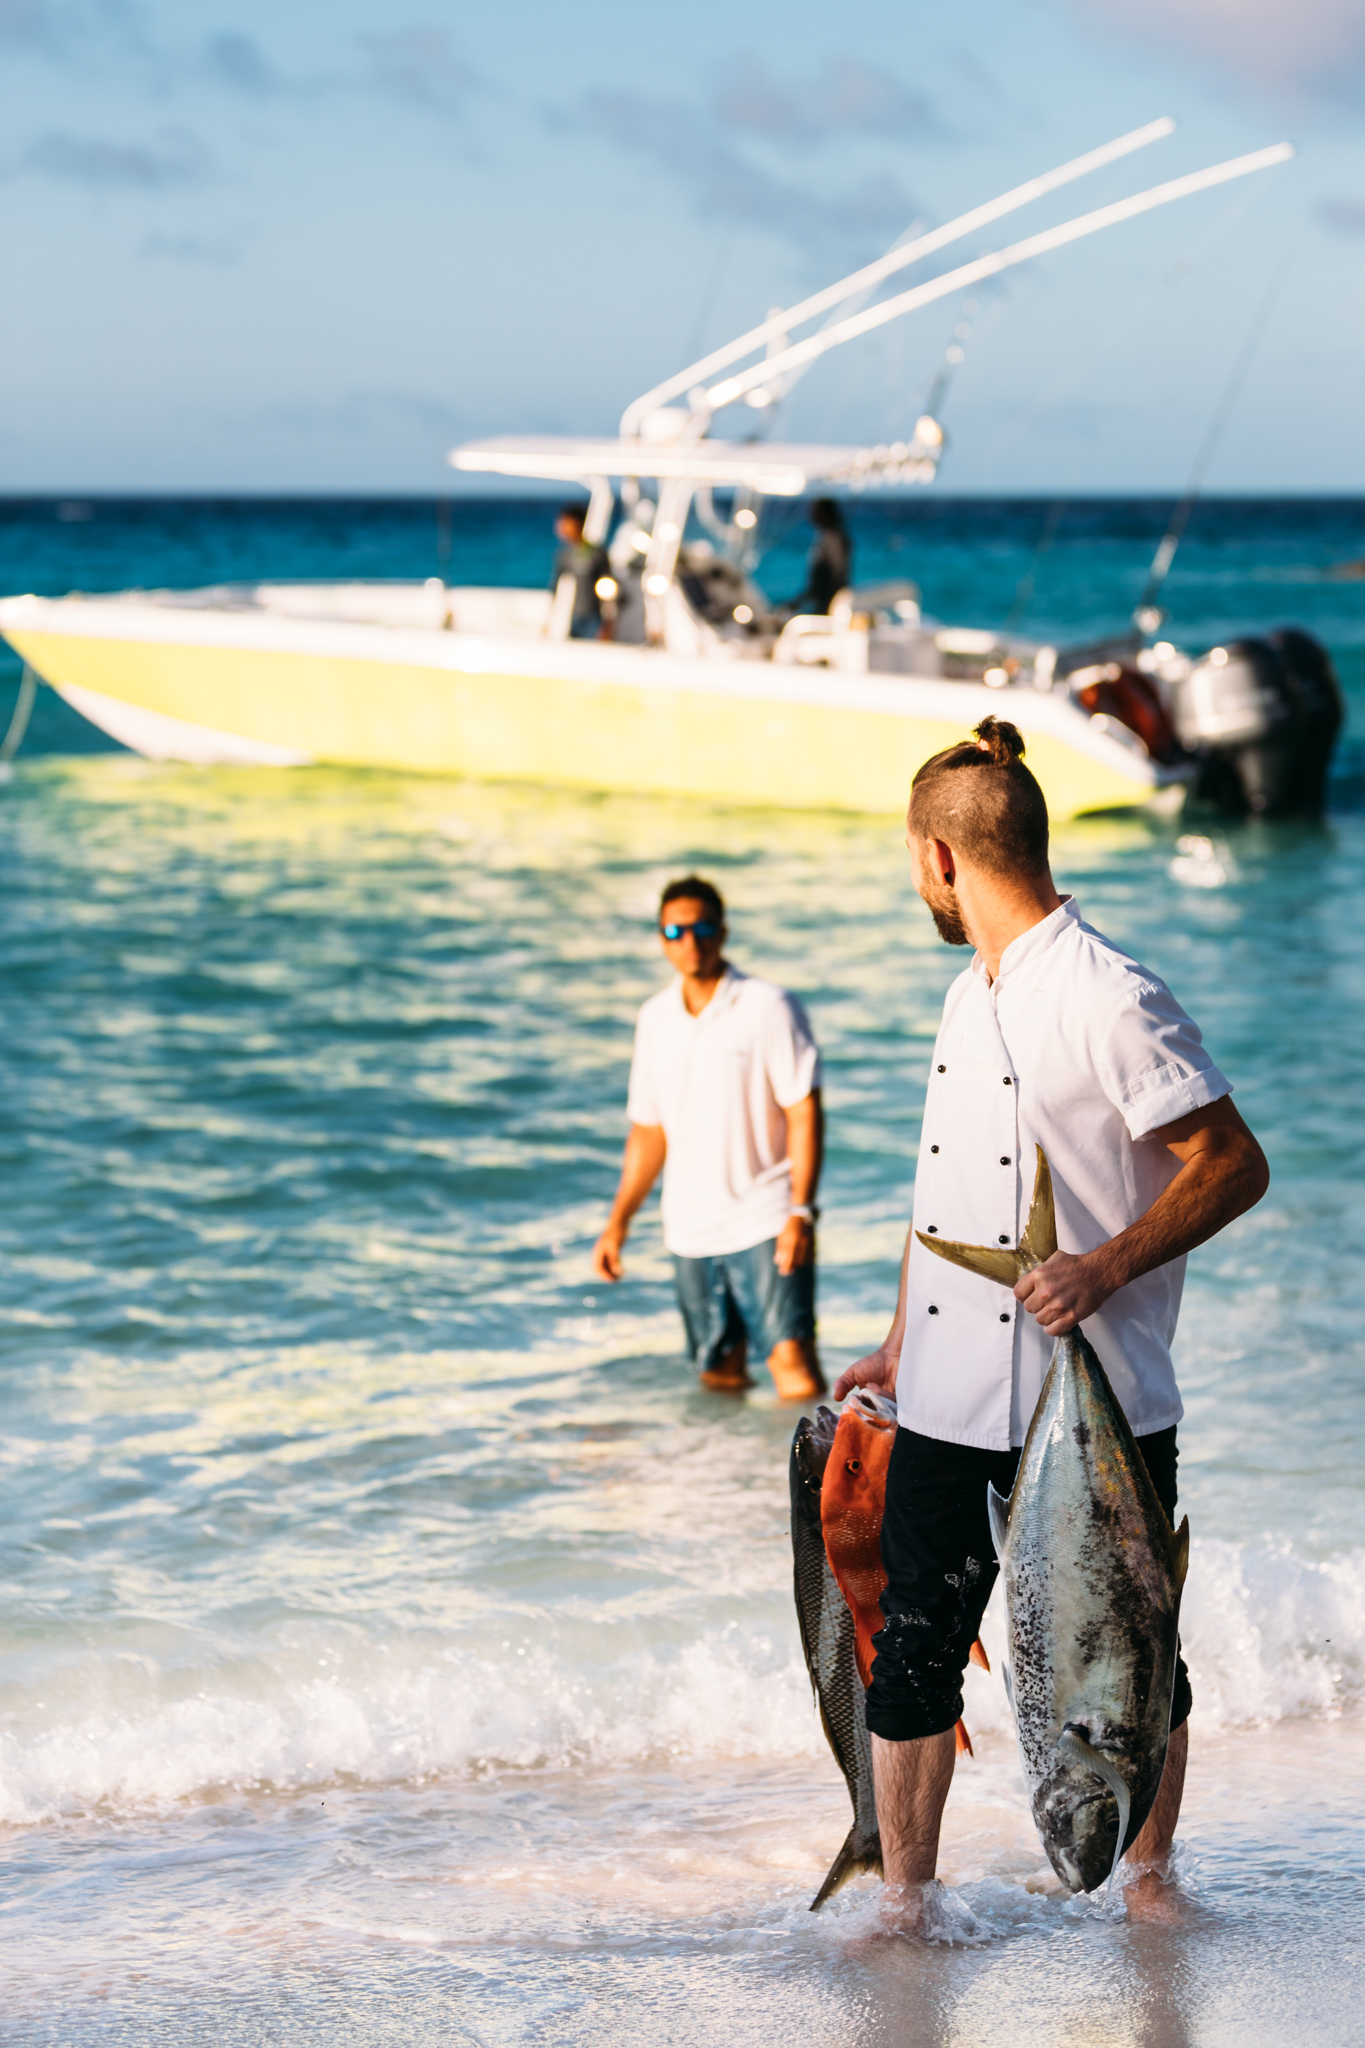 North Island's Executive Chef fetching fresh fish straight from the ocean for dinner off their boat from the Dive Centre Manager in the background